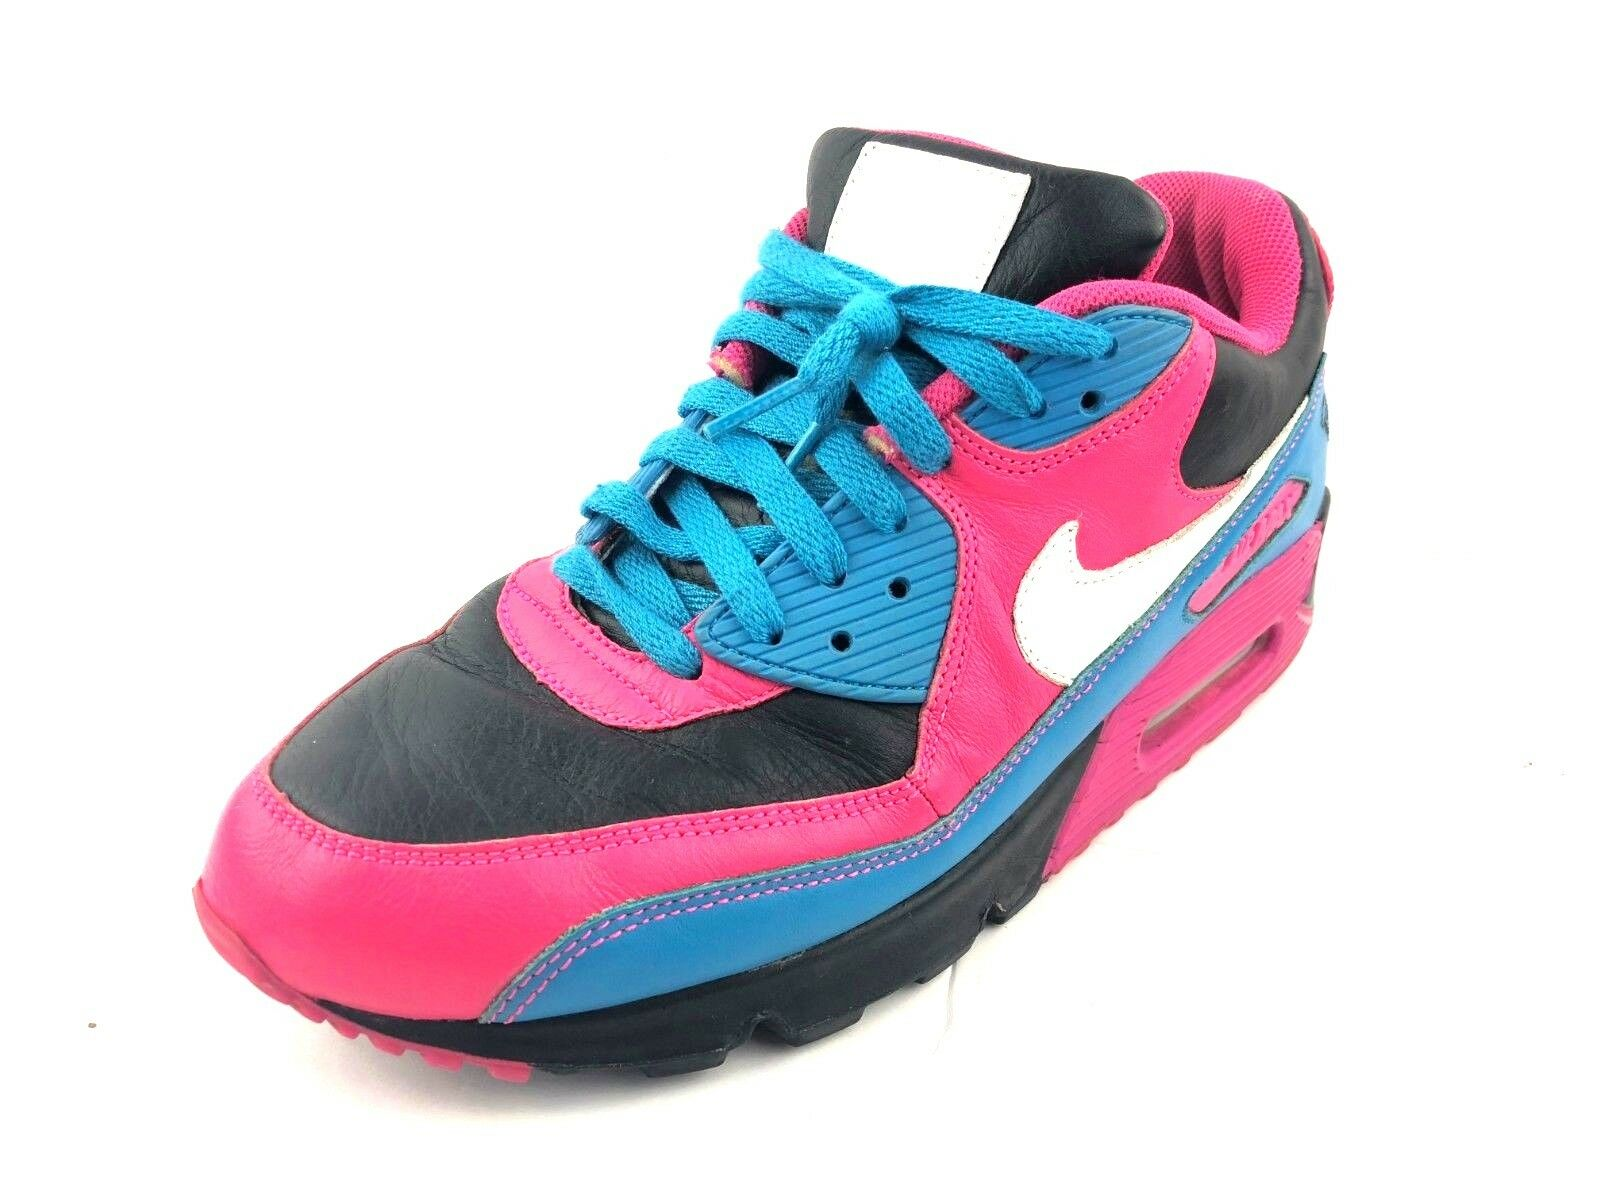 Nike Color ID AIR MAX 314266-995 Multi - Color Nike Men's Sneakers Shoes Size 10 4efb4c